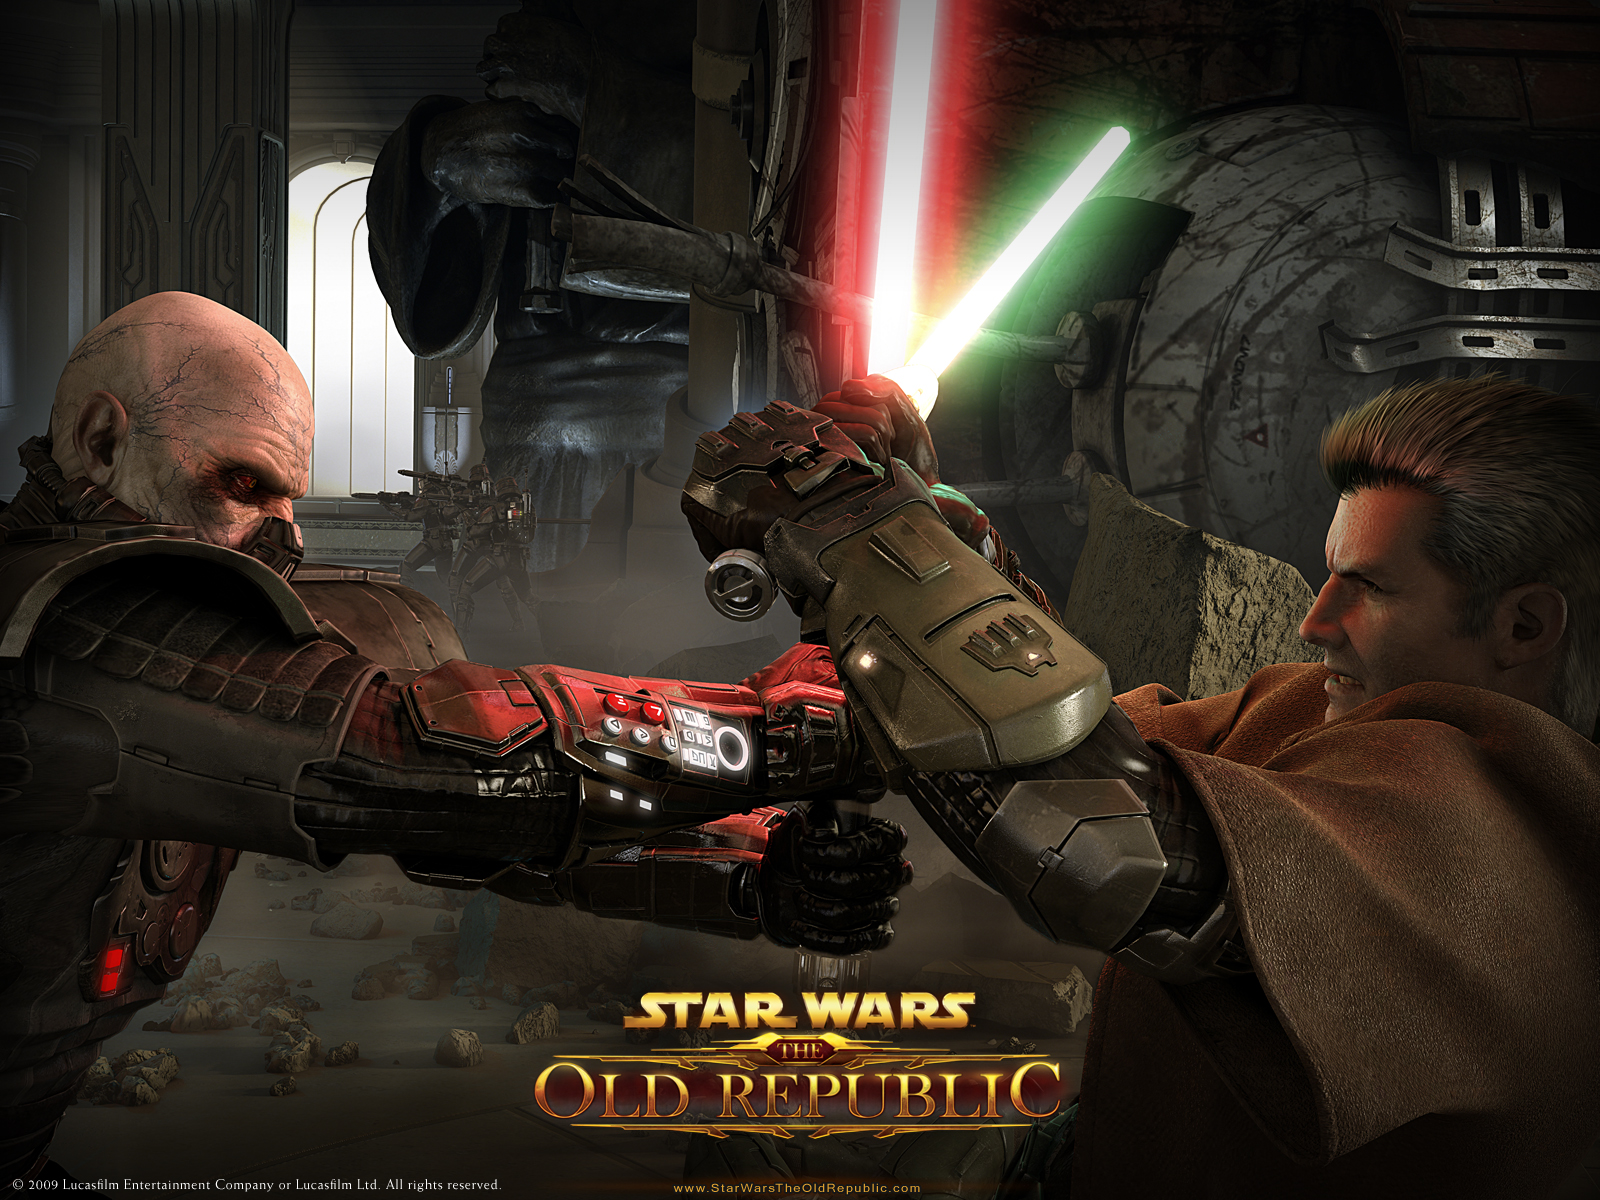 Star Wars: The Old Republic beta draws 2 million ahead of Dec. 20 release